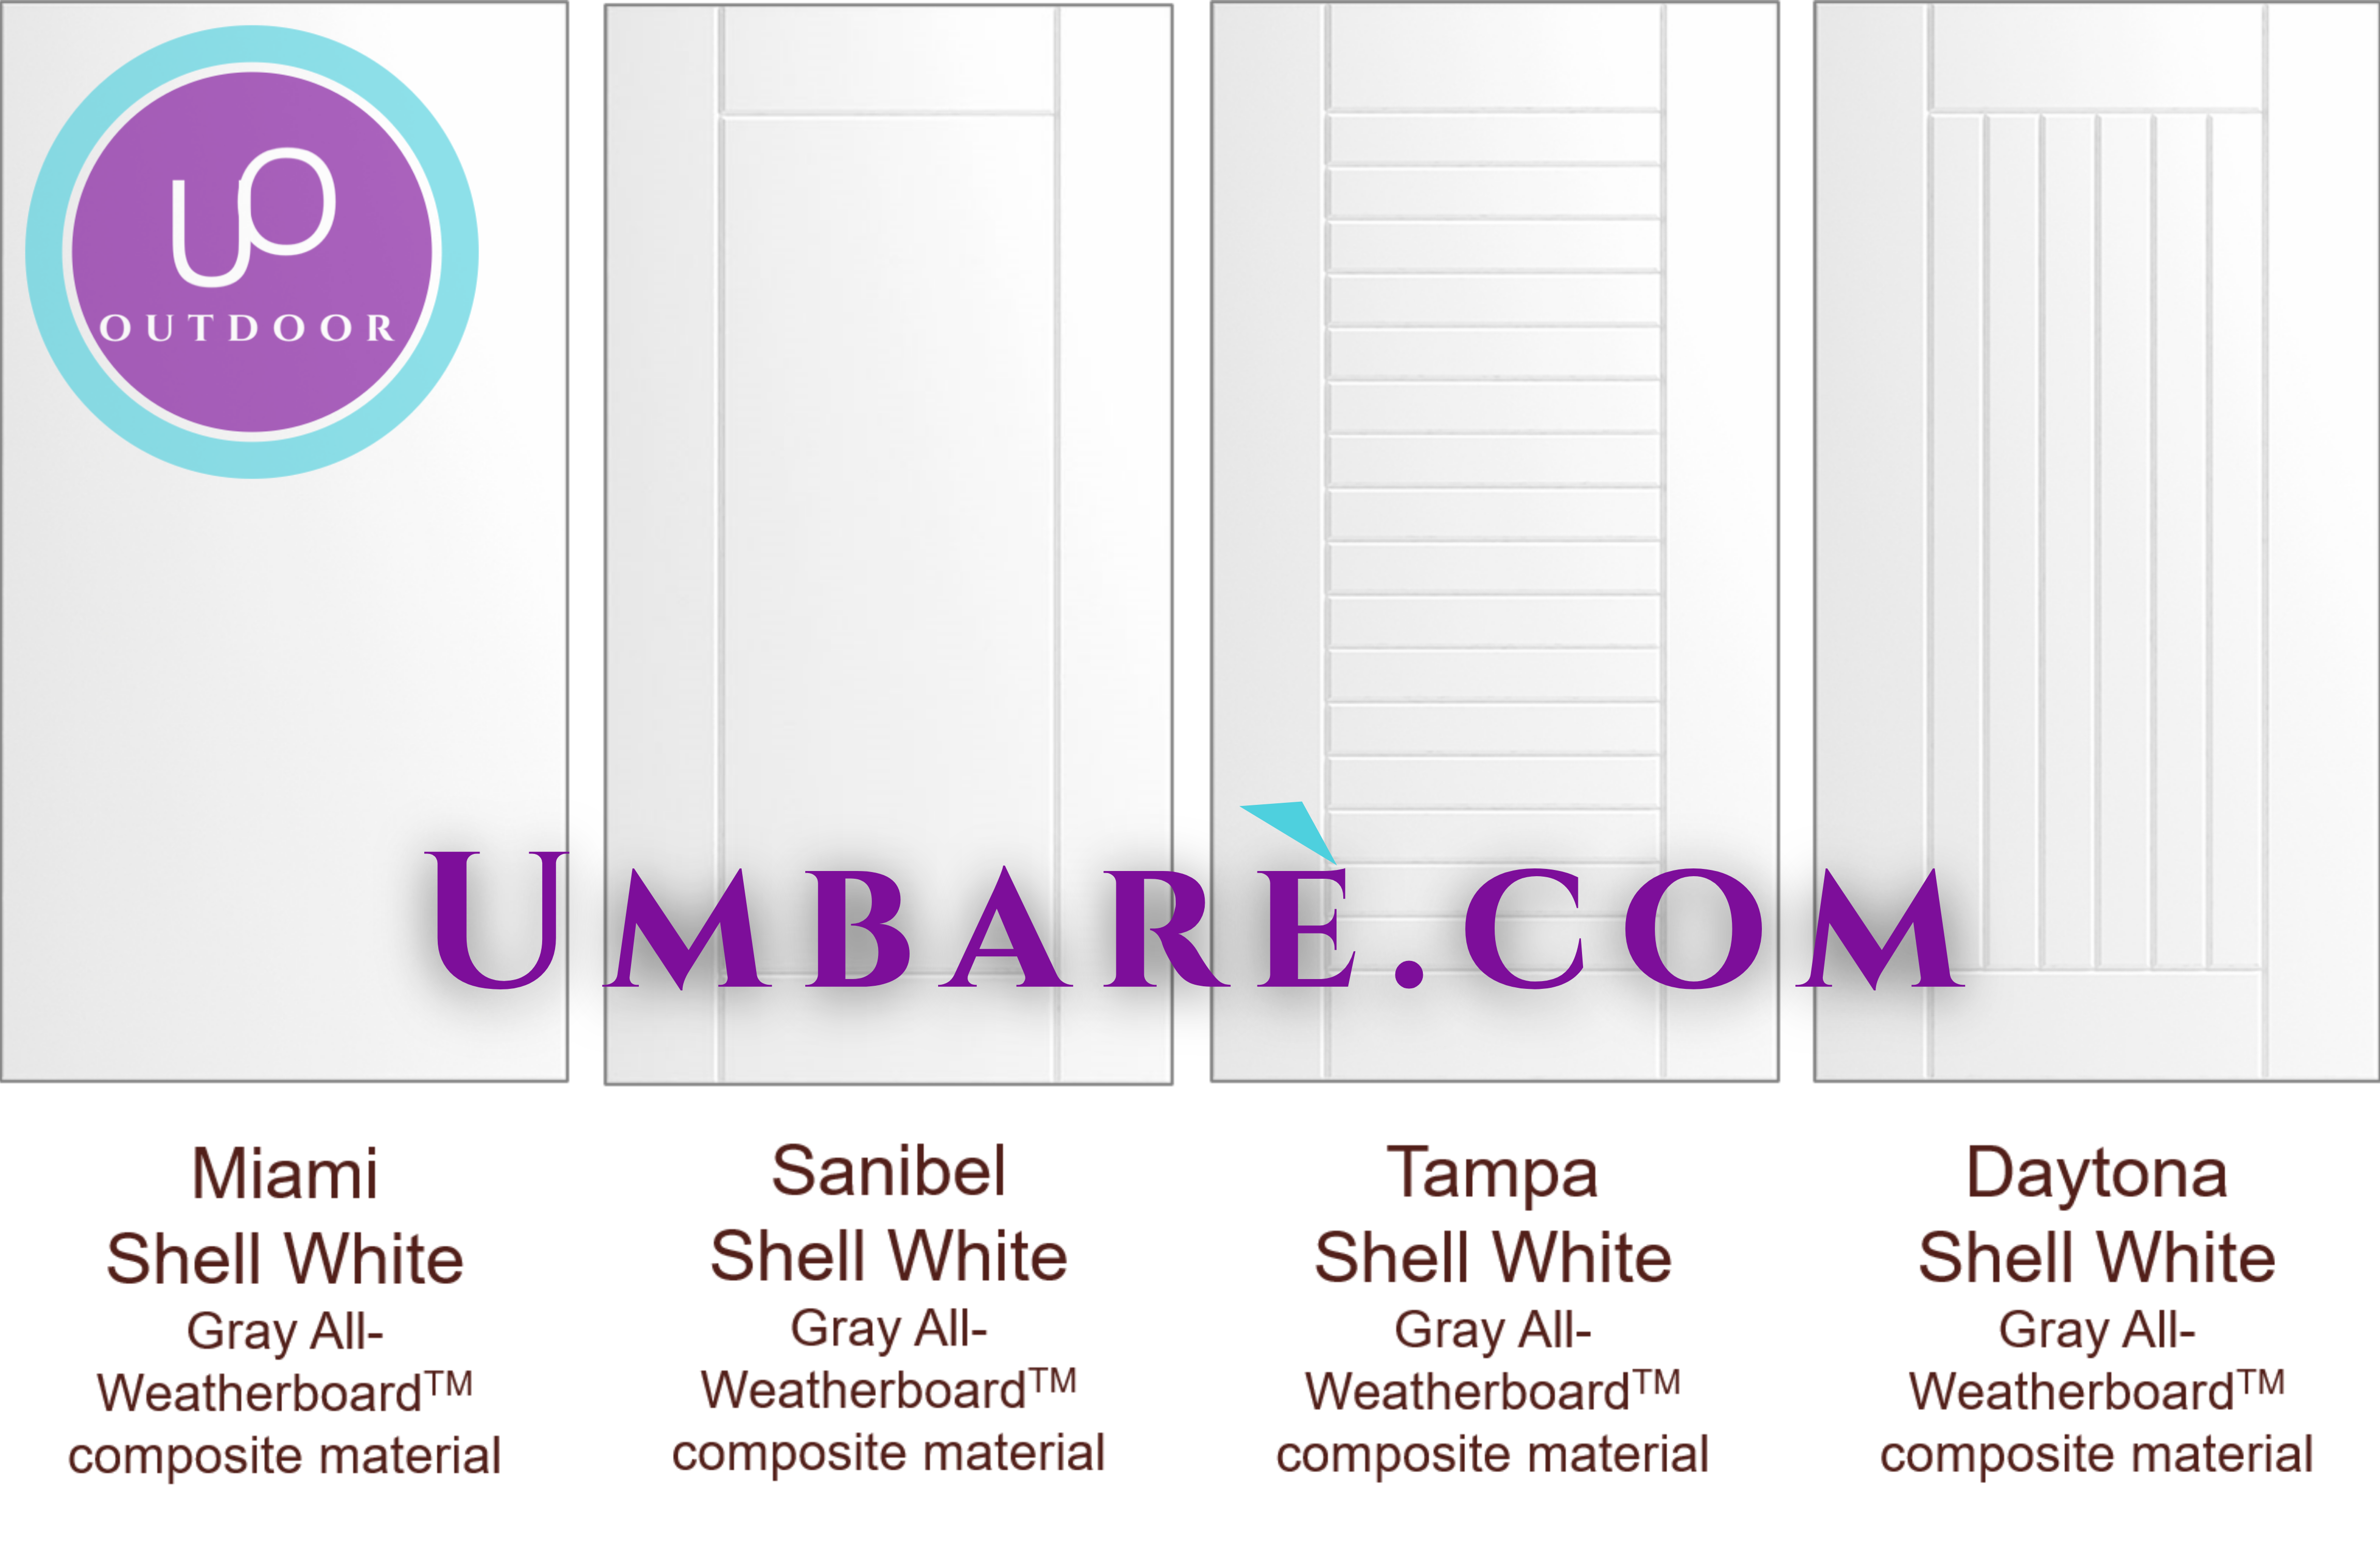 Outdoor Cabinets Shell White SarasotaOutdoor Cabinets Sarasota Outdoor Cabinets Lakewood Ranch Outdoor Cabinets Longboat Key Outdoor Cabinets Venice Outdoor Cabinets Siesta Key